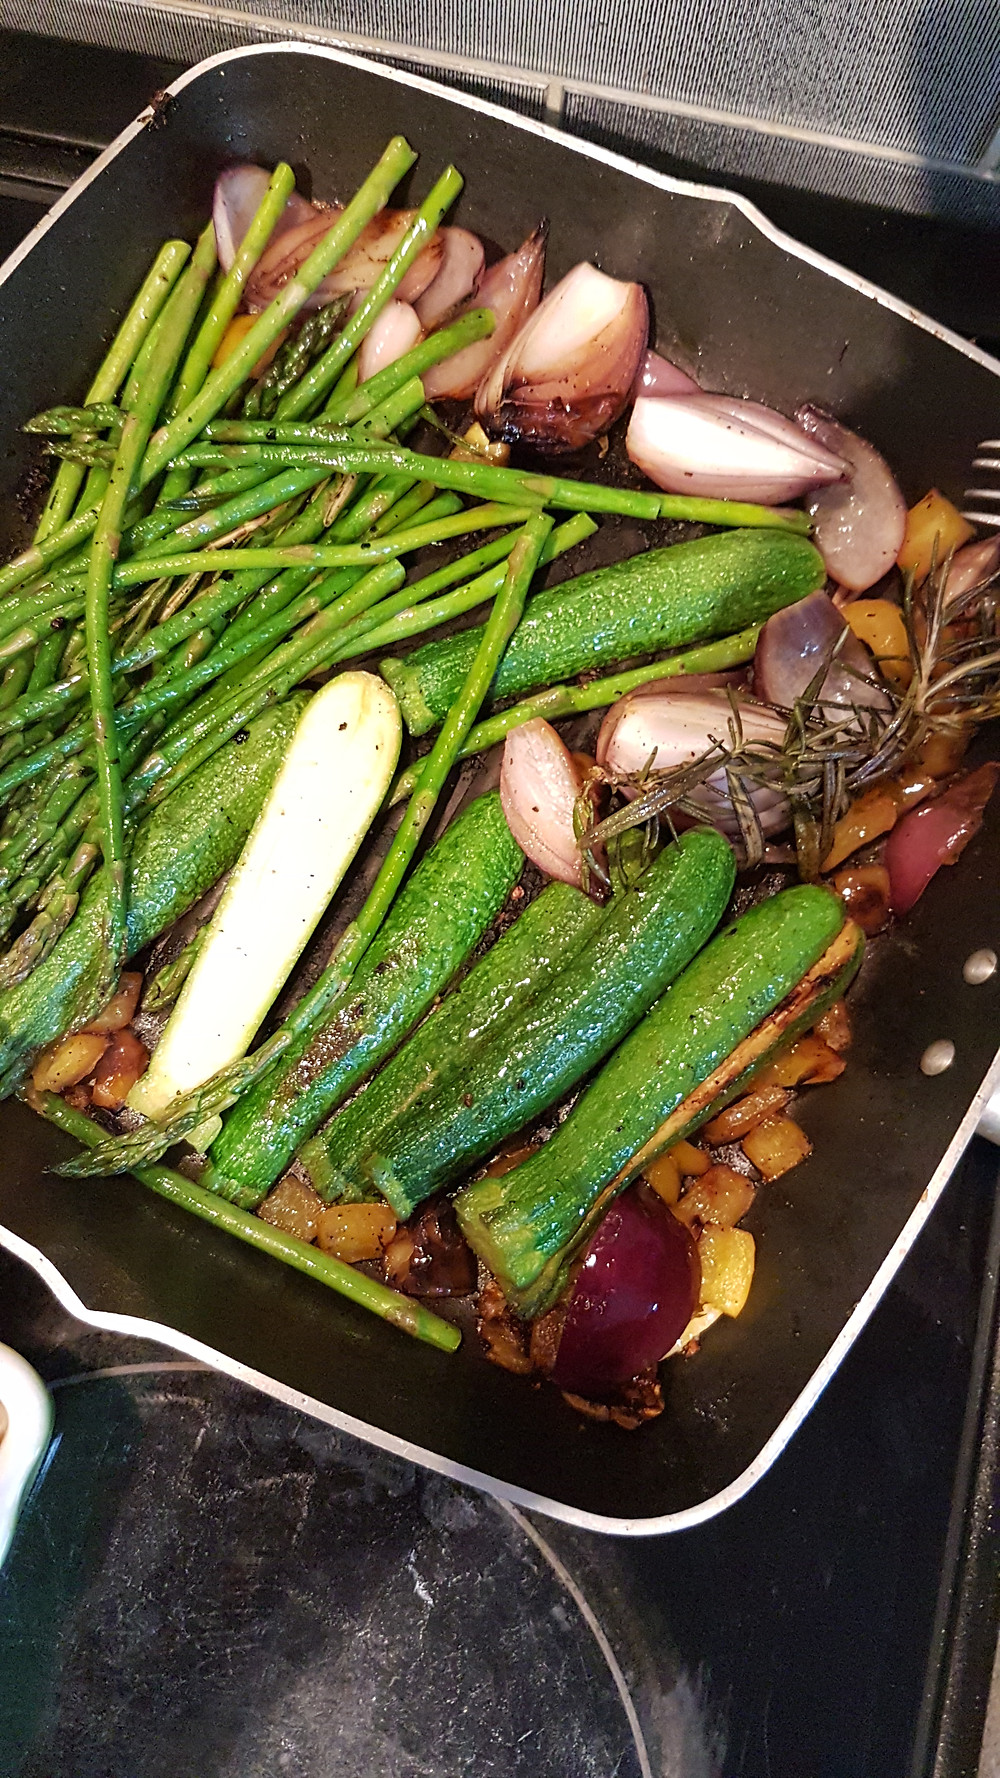 Asparagus, courgettes and onions in griddle pan